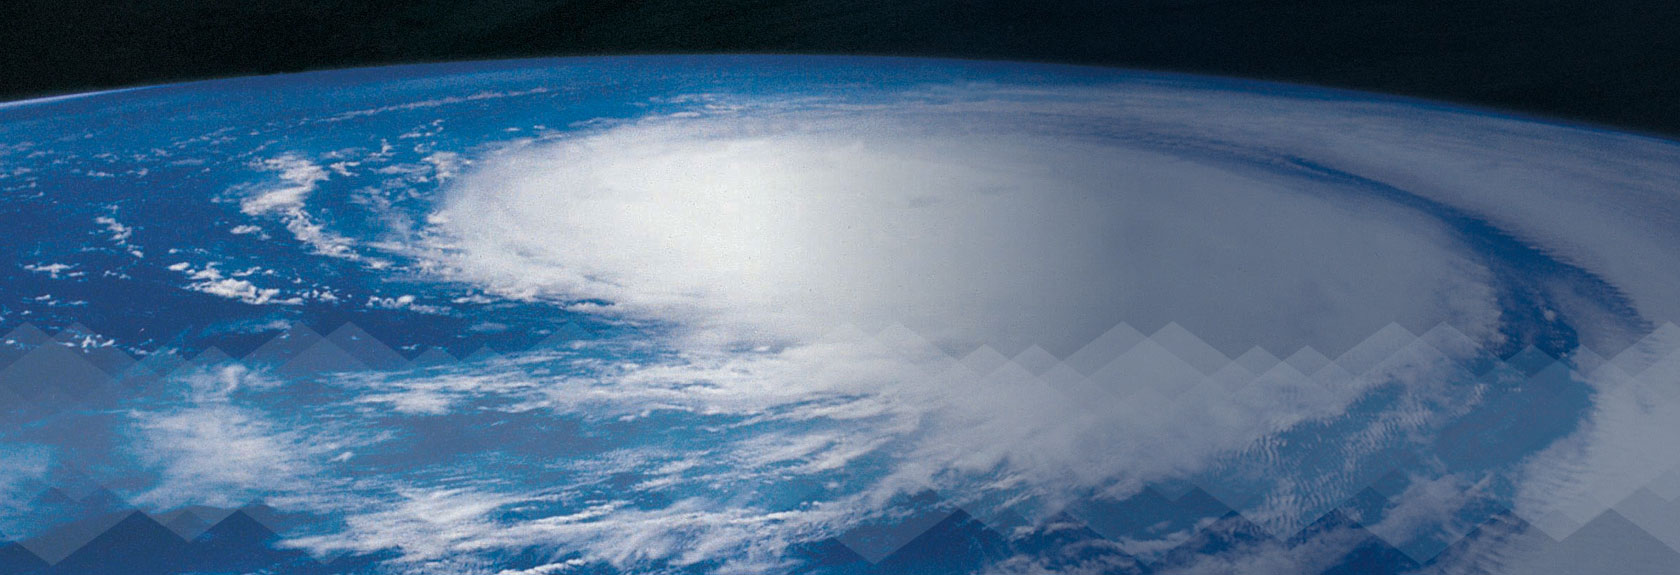 Earth View Hurricane